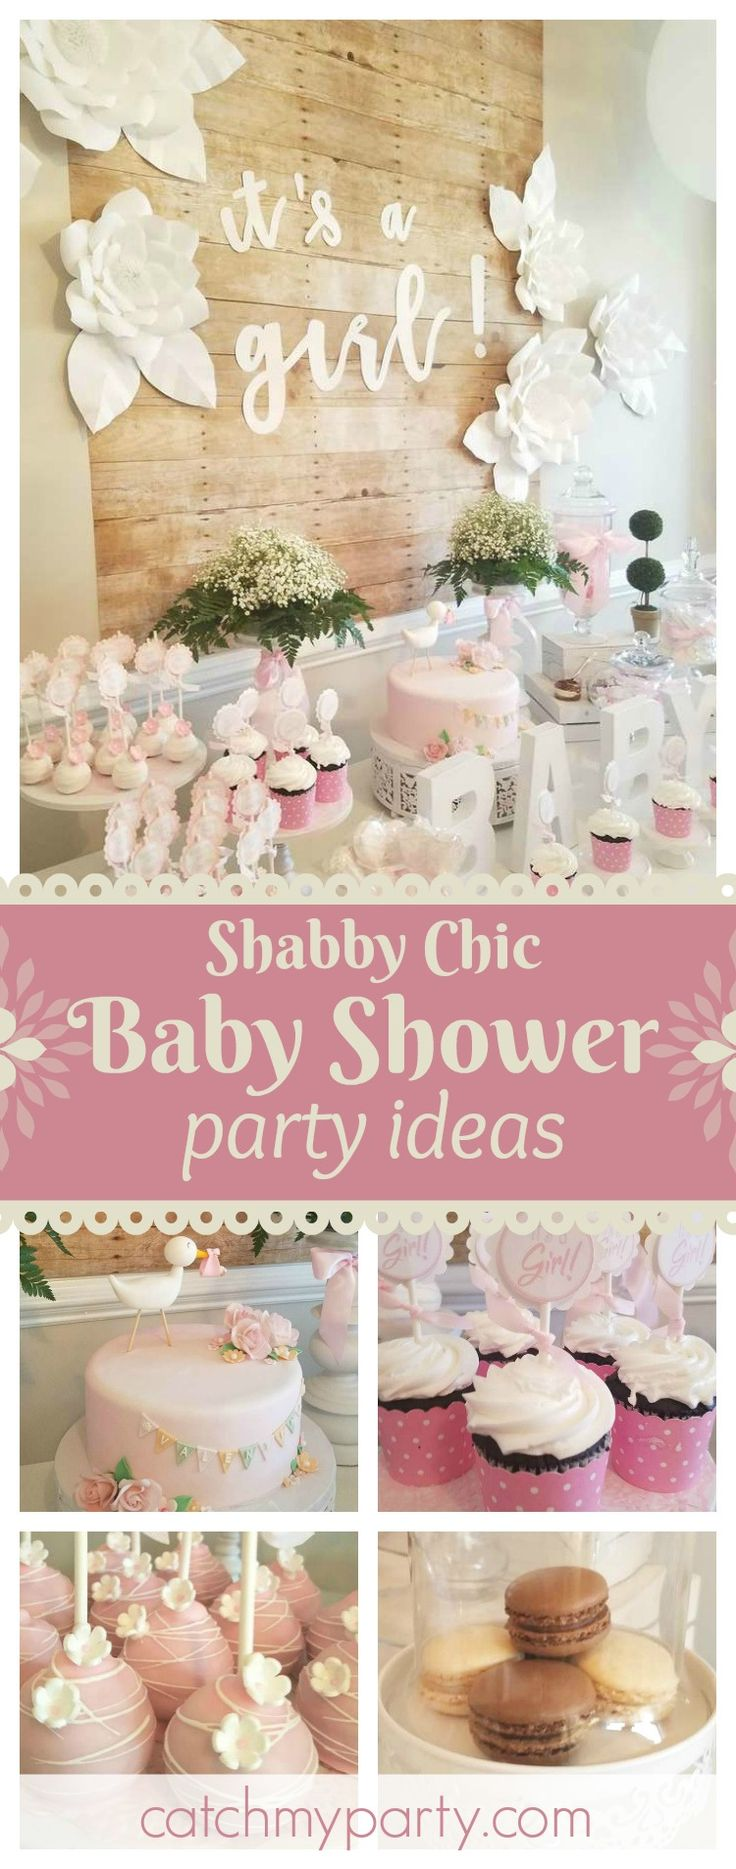 Best 25+ Shabby chic baby shower ideas on Pinterest | Baby ...